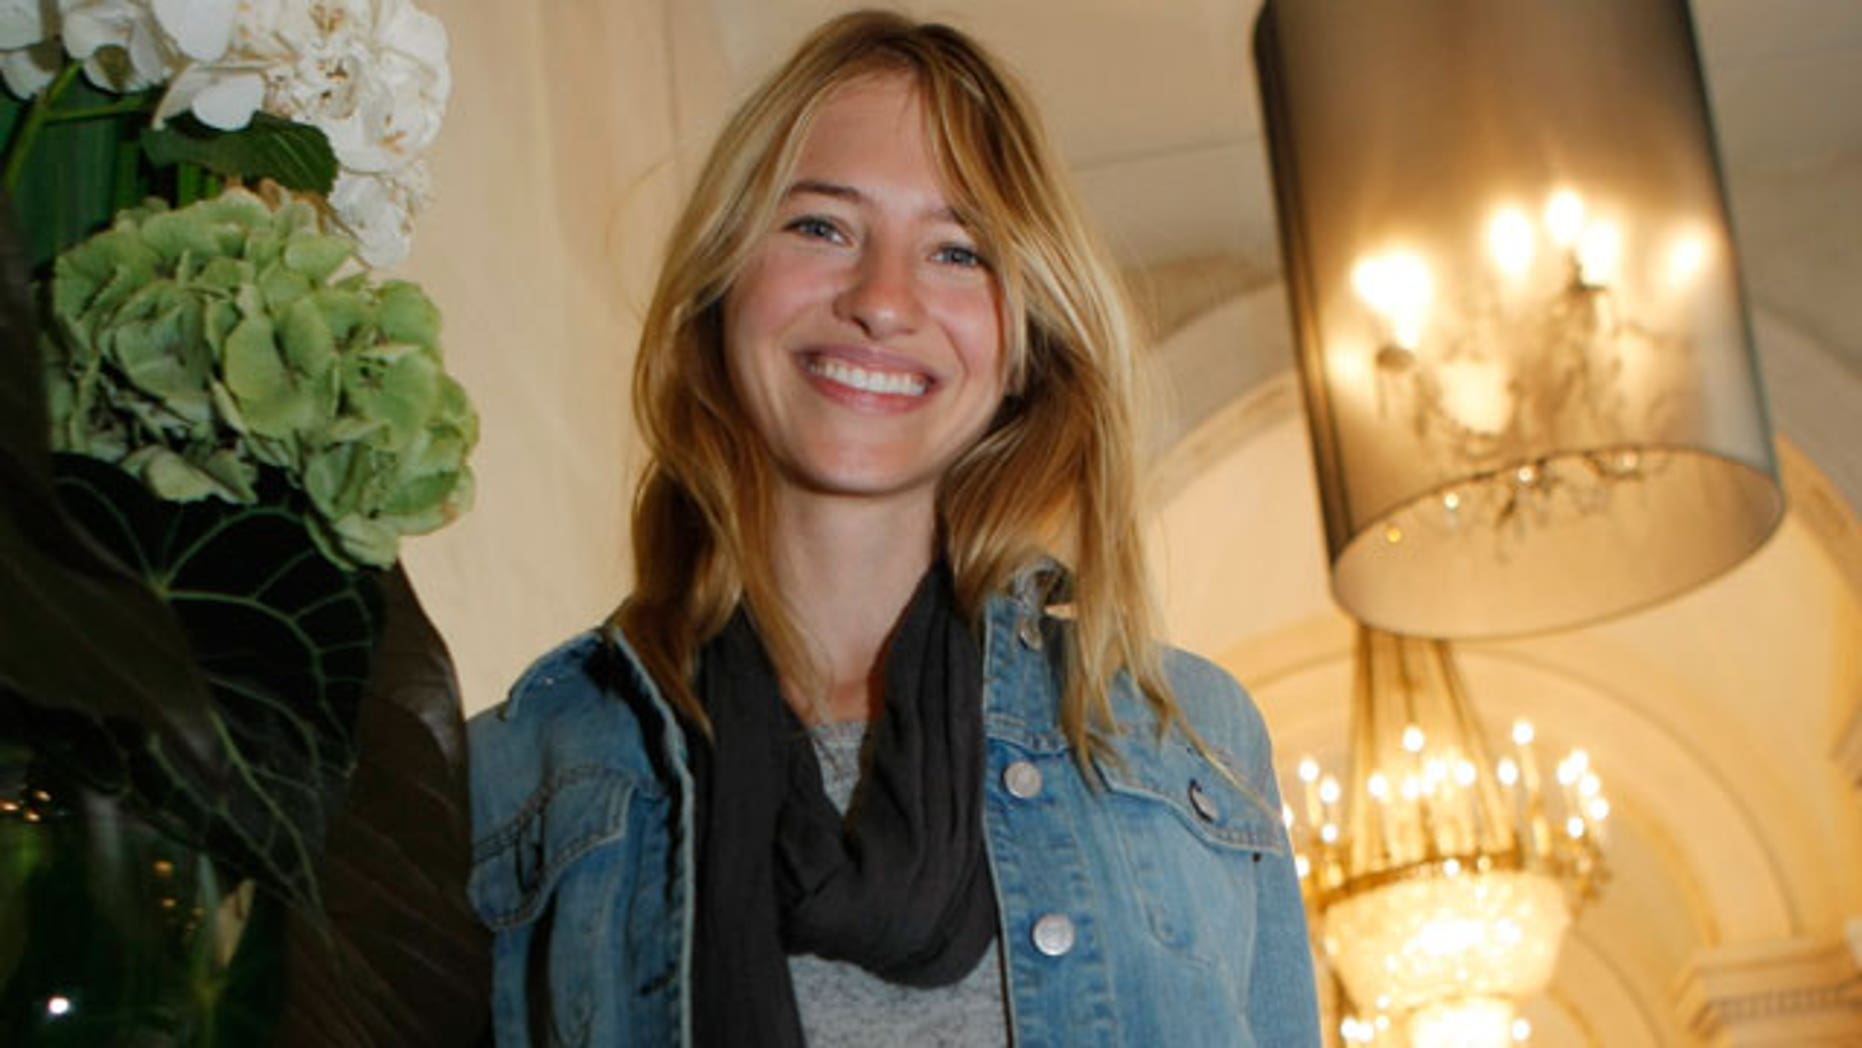 Model Sara Ziff began filming backstage for fun but it turned into a tell-all documentary.